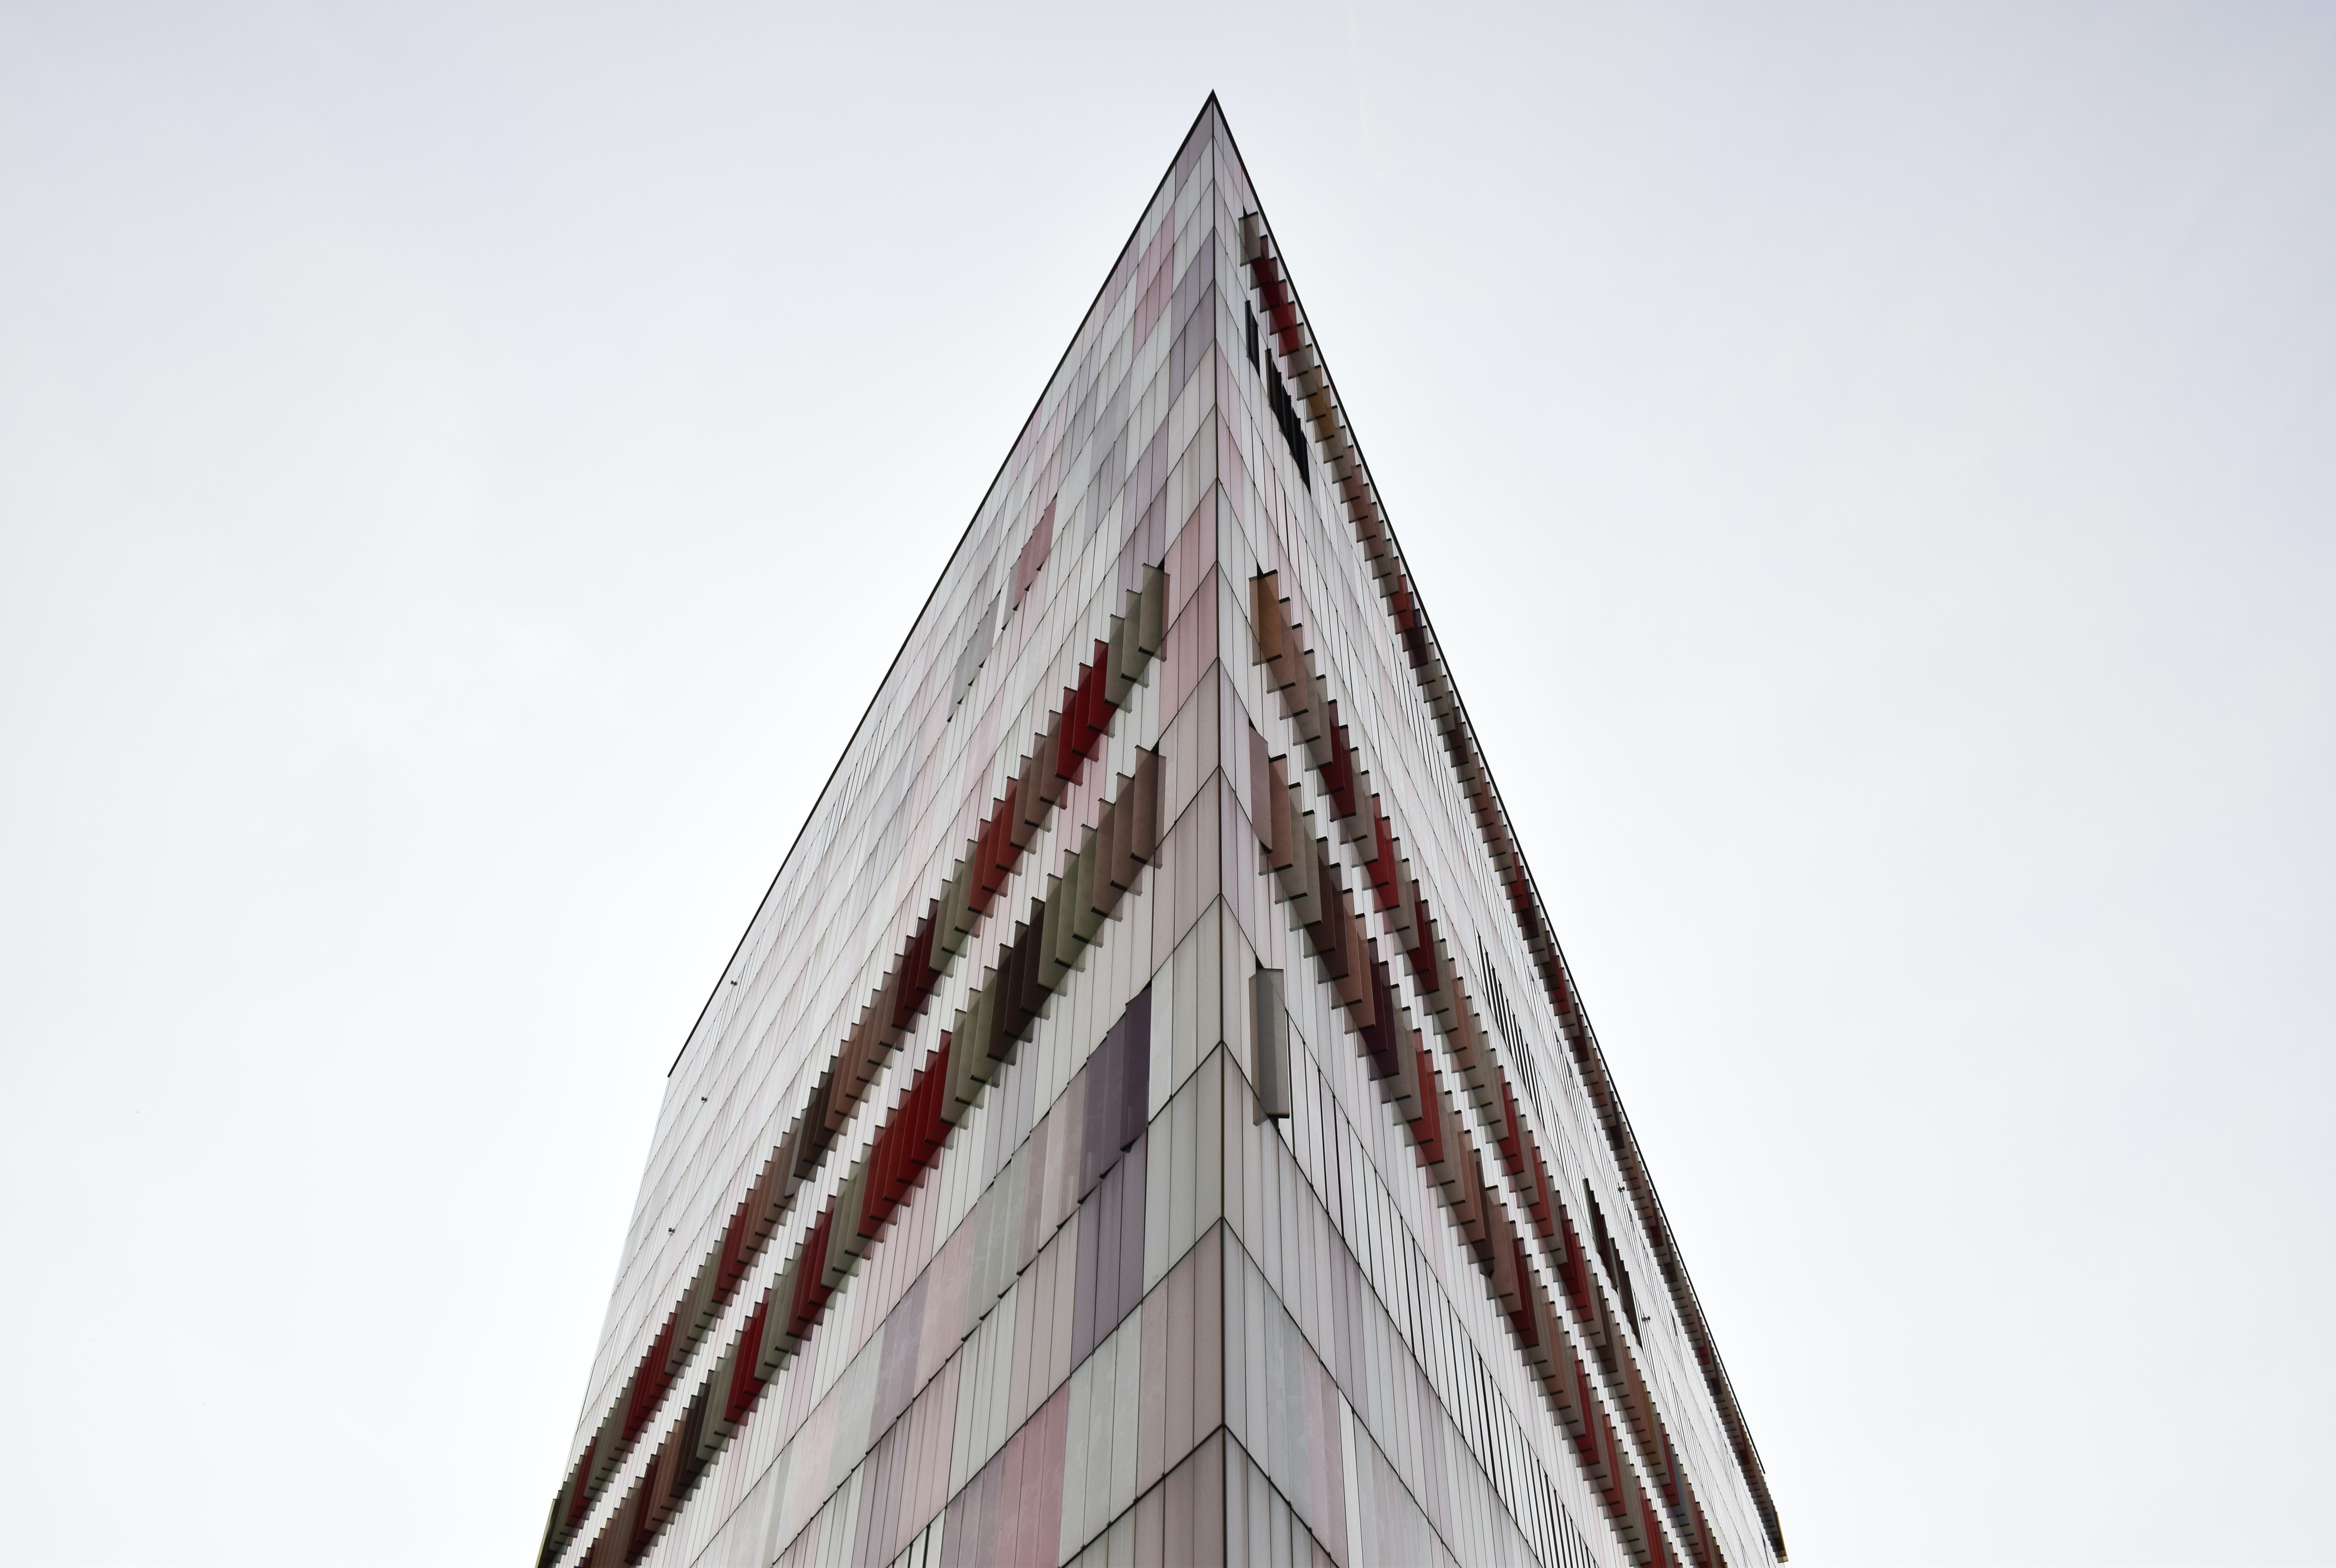 brown and gray high-rise building